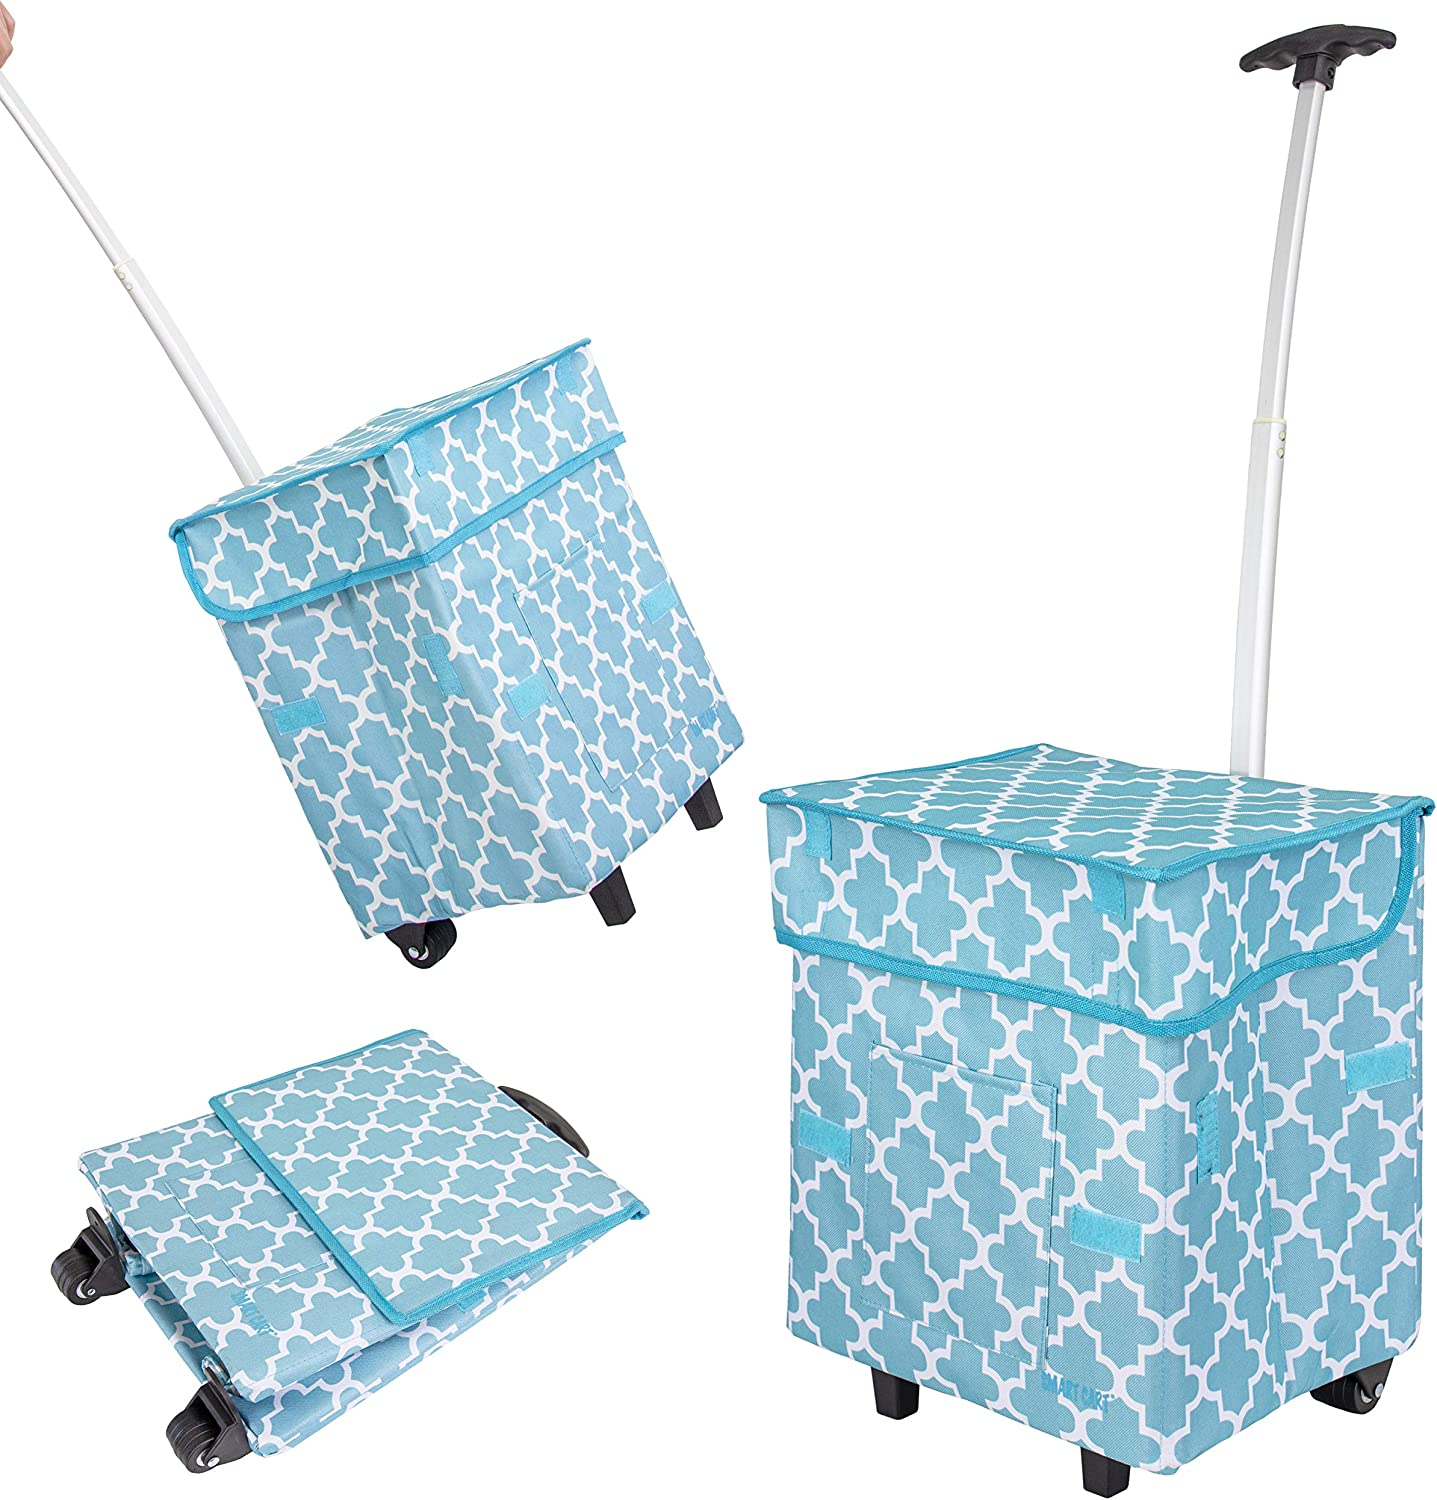 4. dBest Smart Collapsible Cart